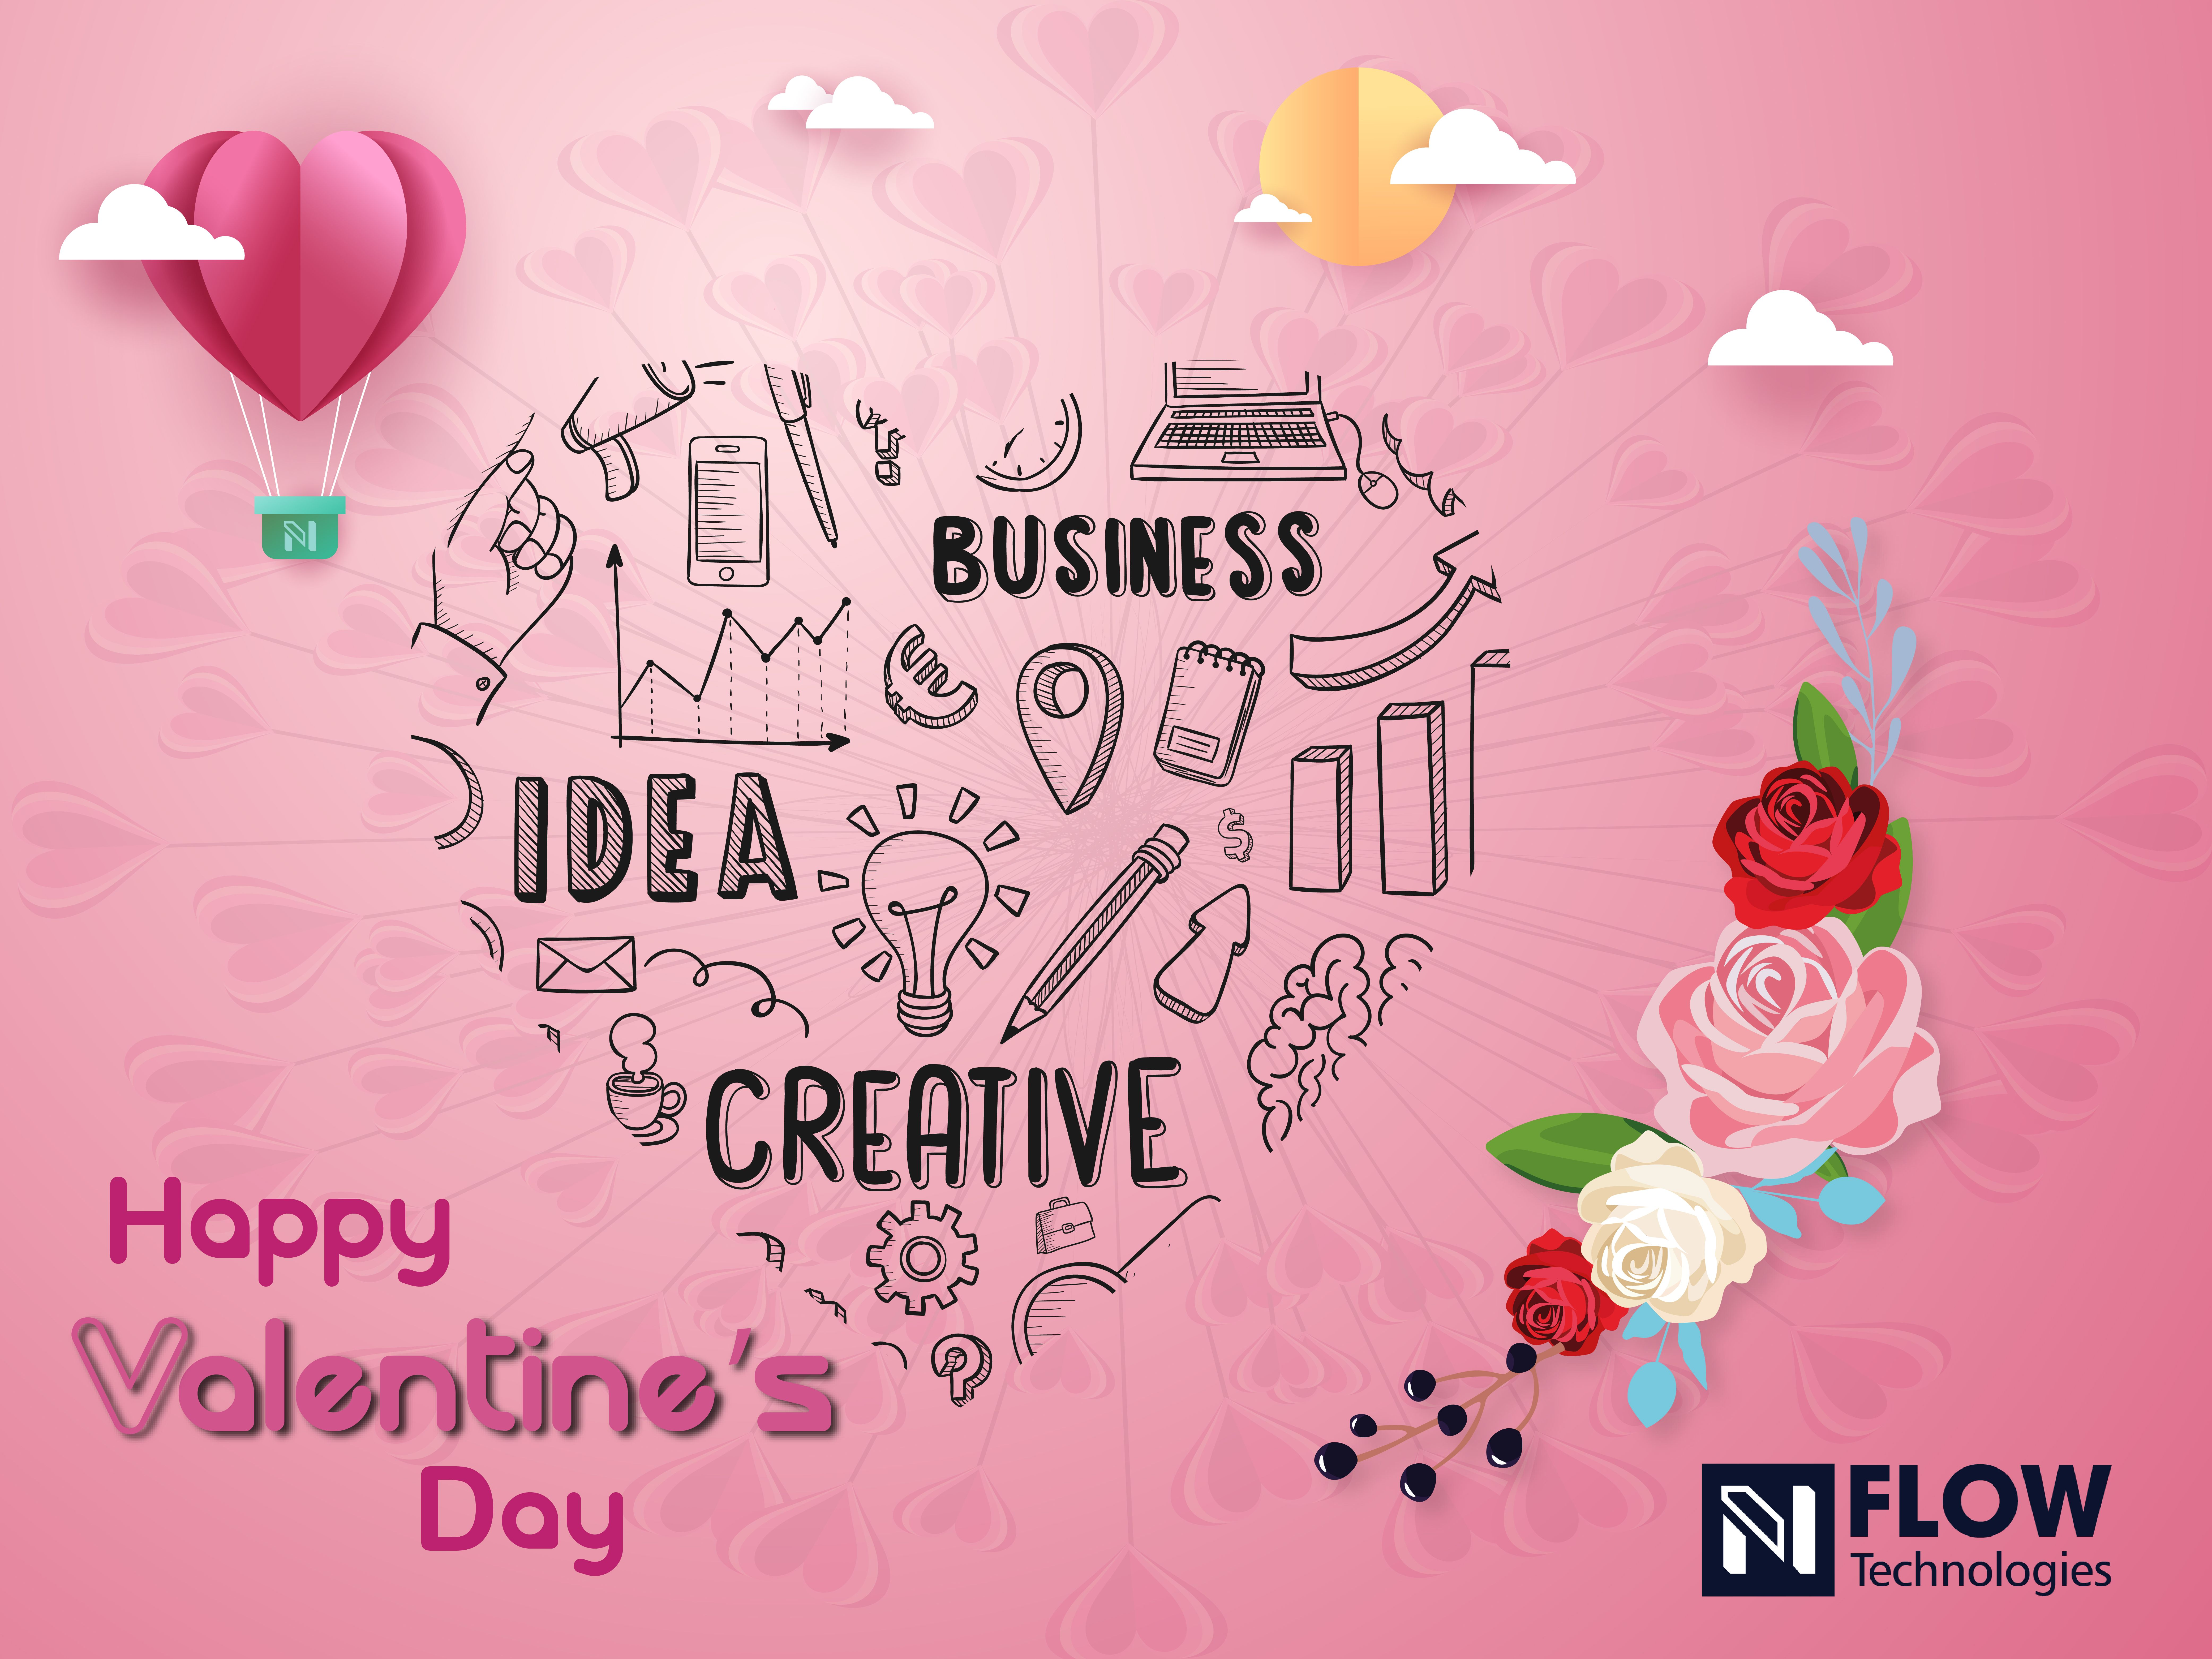 Customers like you are the heart of our business thank